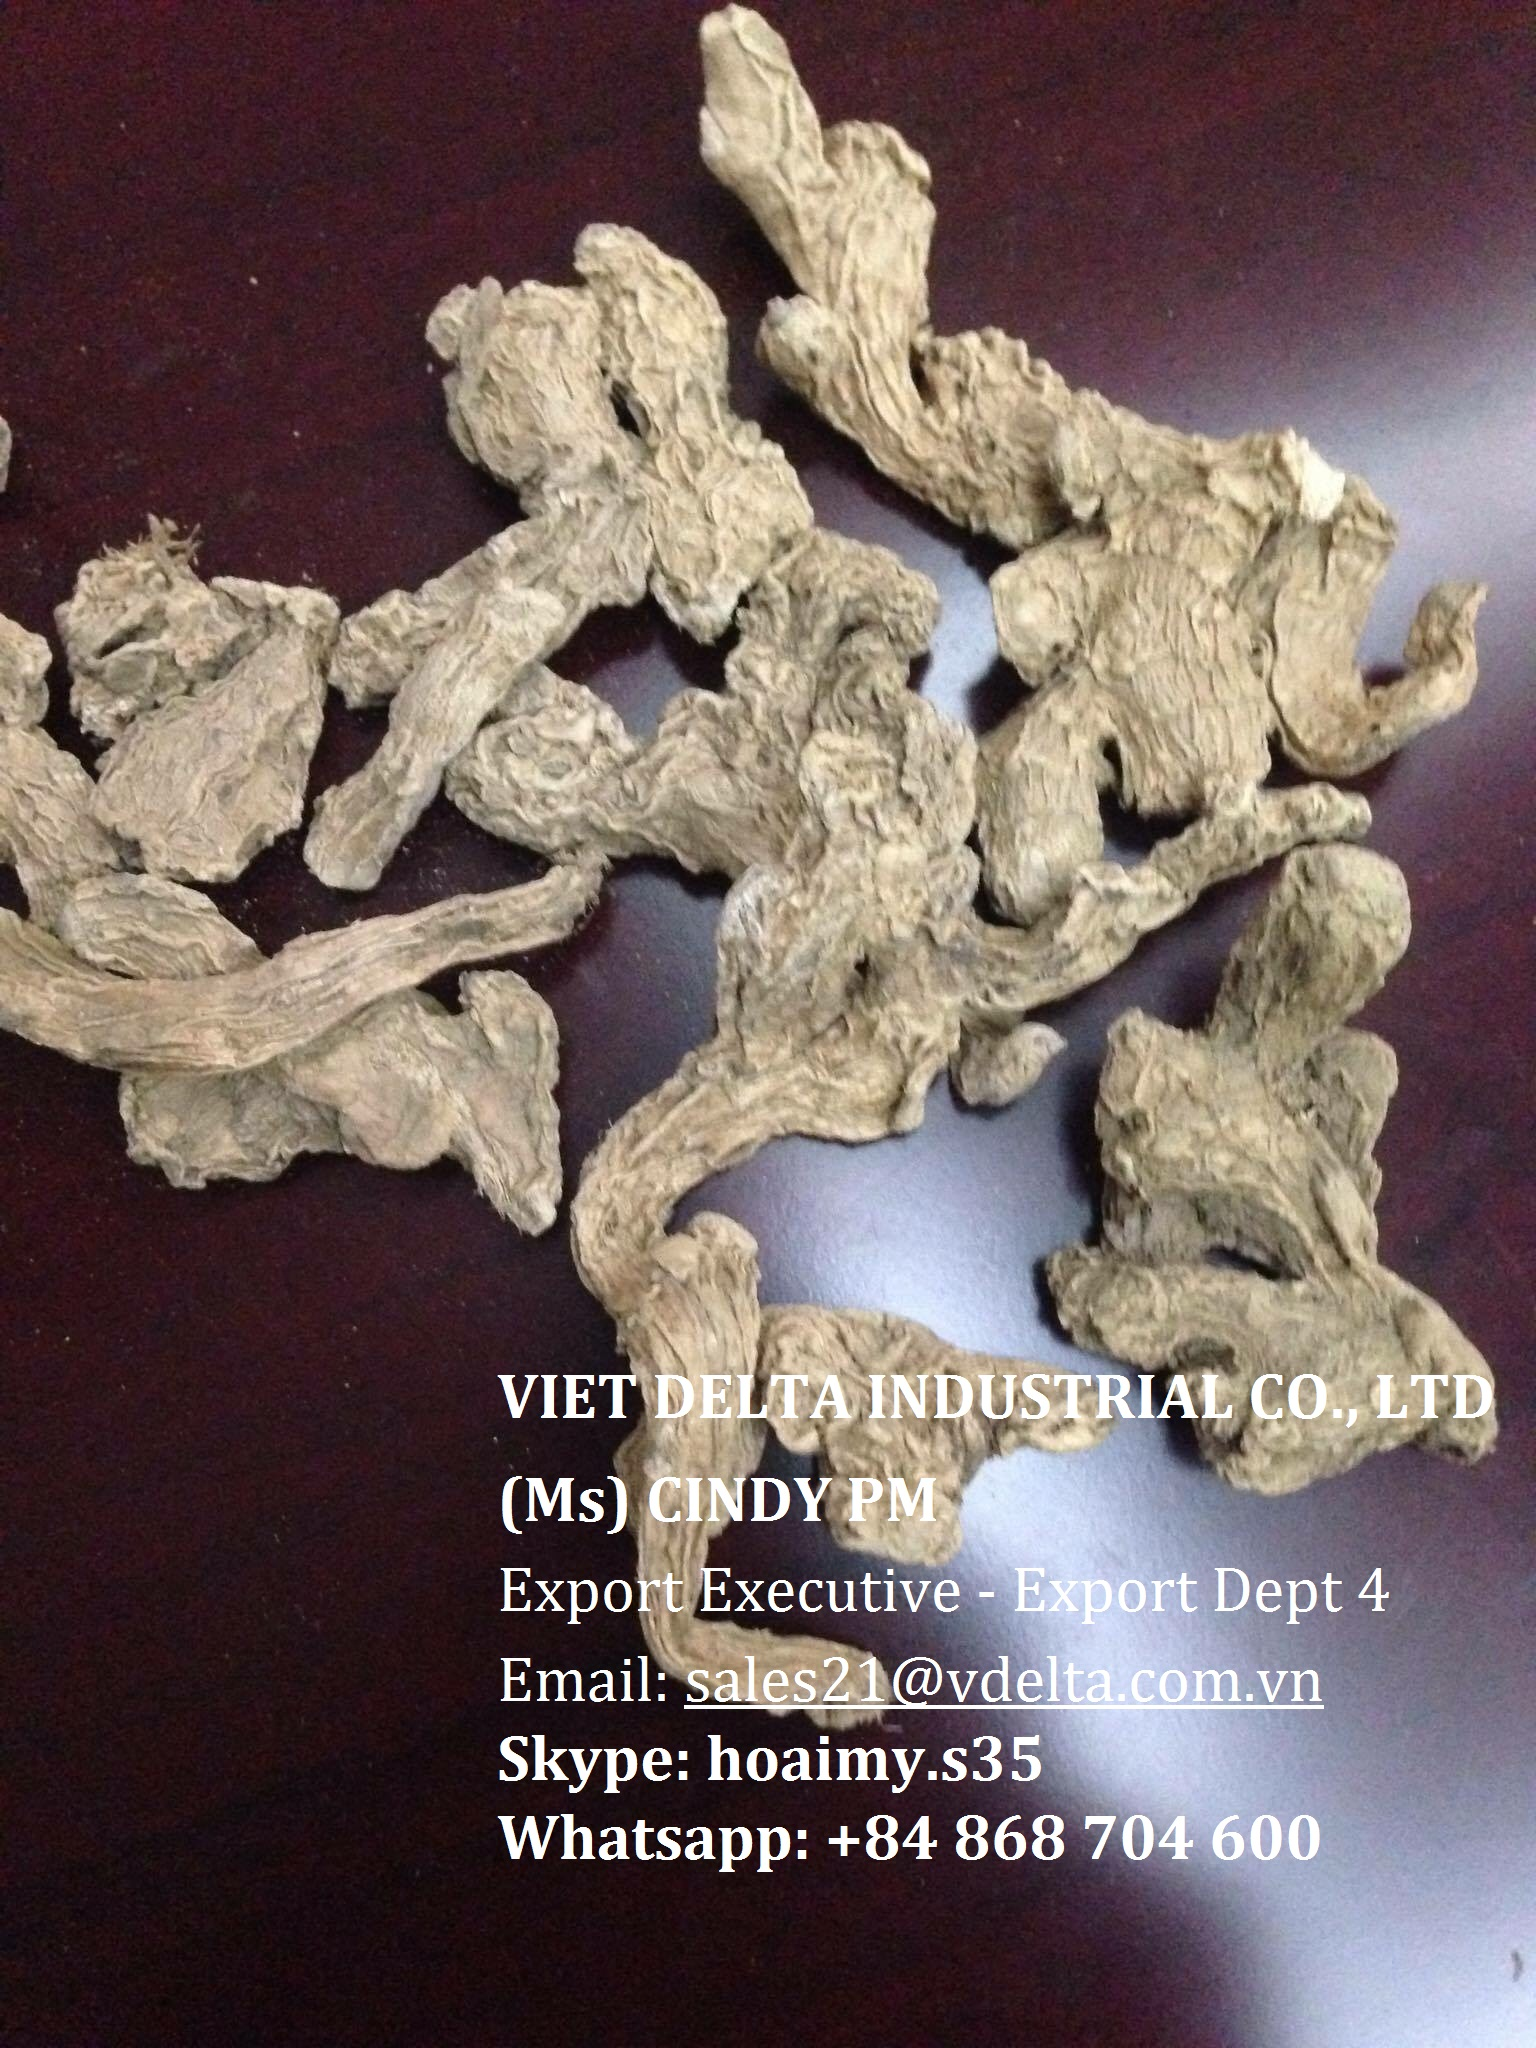 Block dried ginger from Viet Nam Ms Cindy , Whatsapp: +84 868 704 600